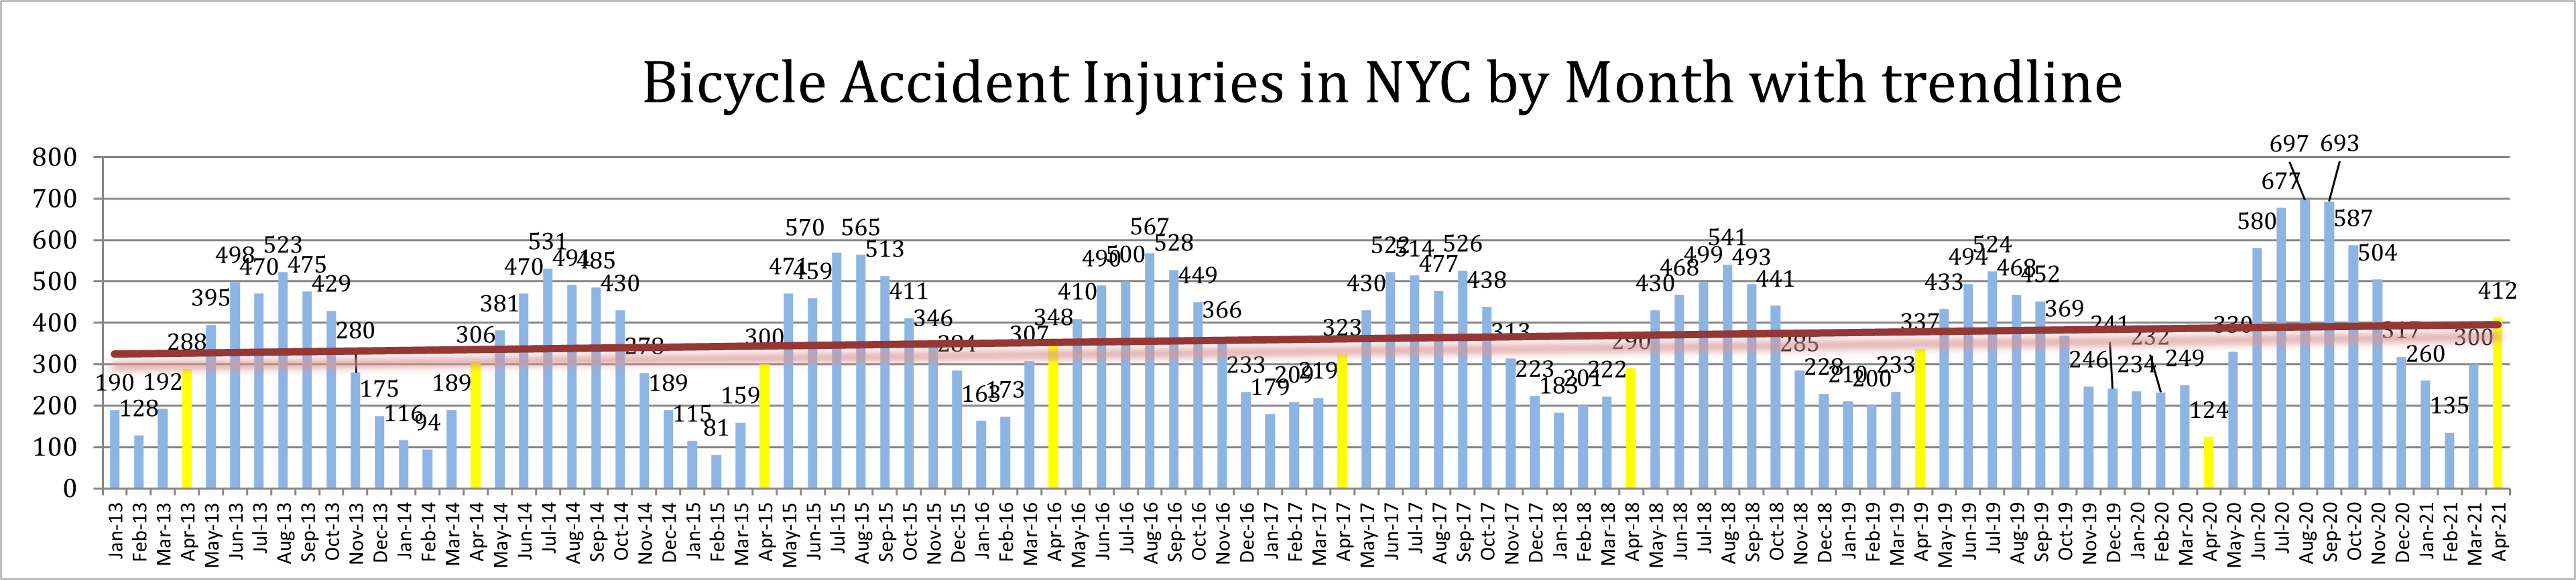 New York Bicycle Accident Injuries April 2021